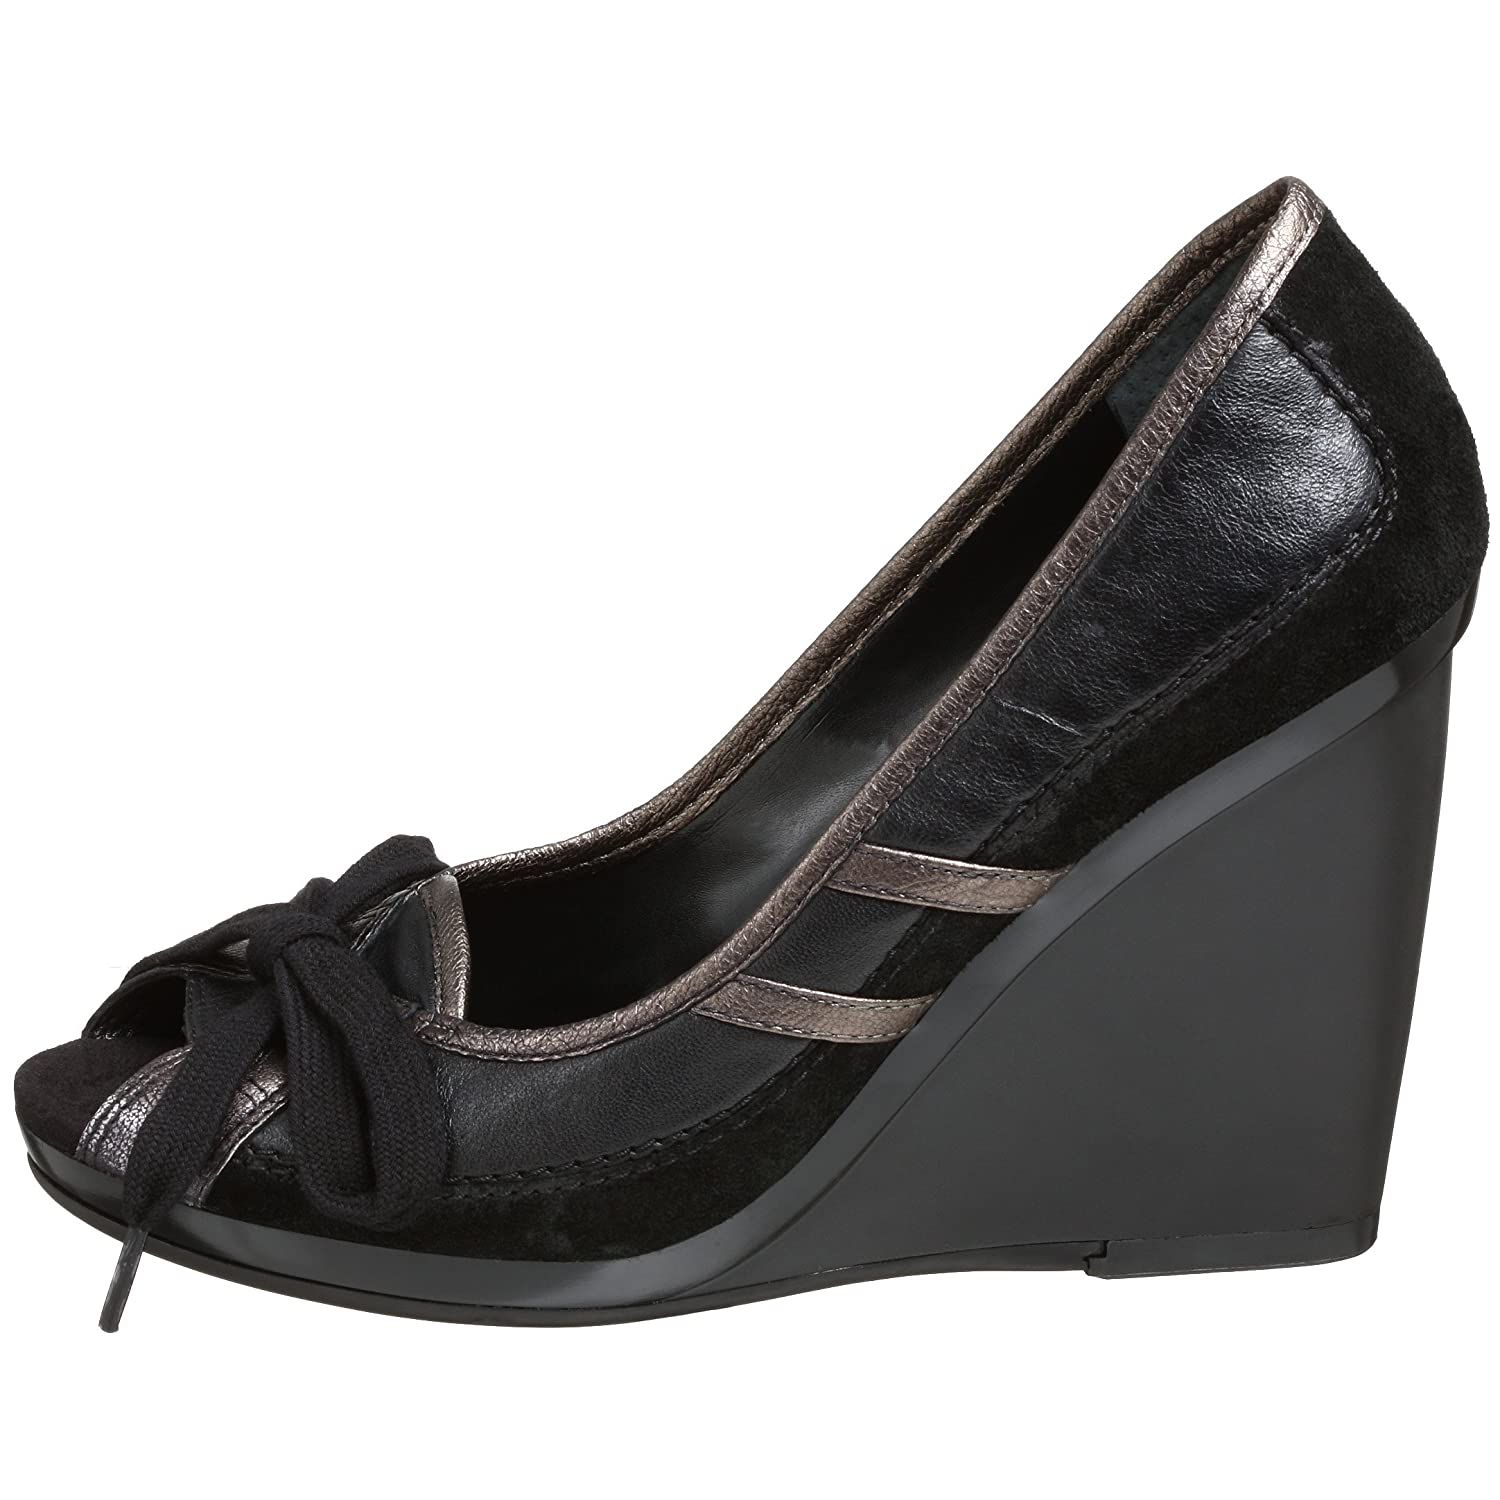 Warshay Peep Toe Platform Wedge  :  pumps sporty shoes open toe